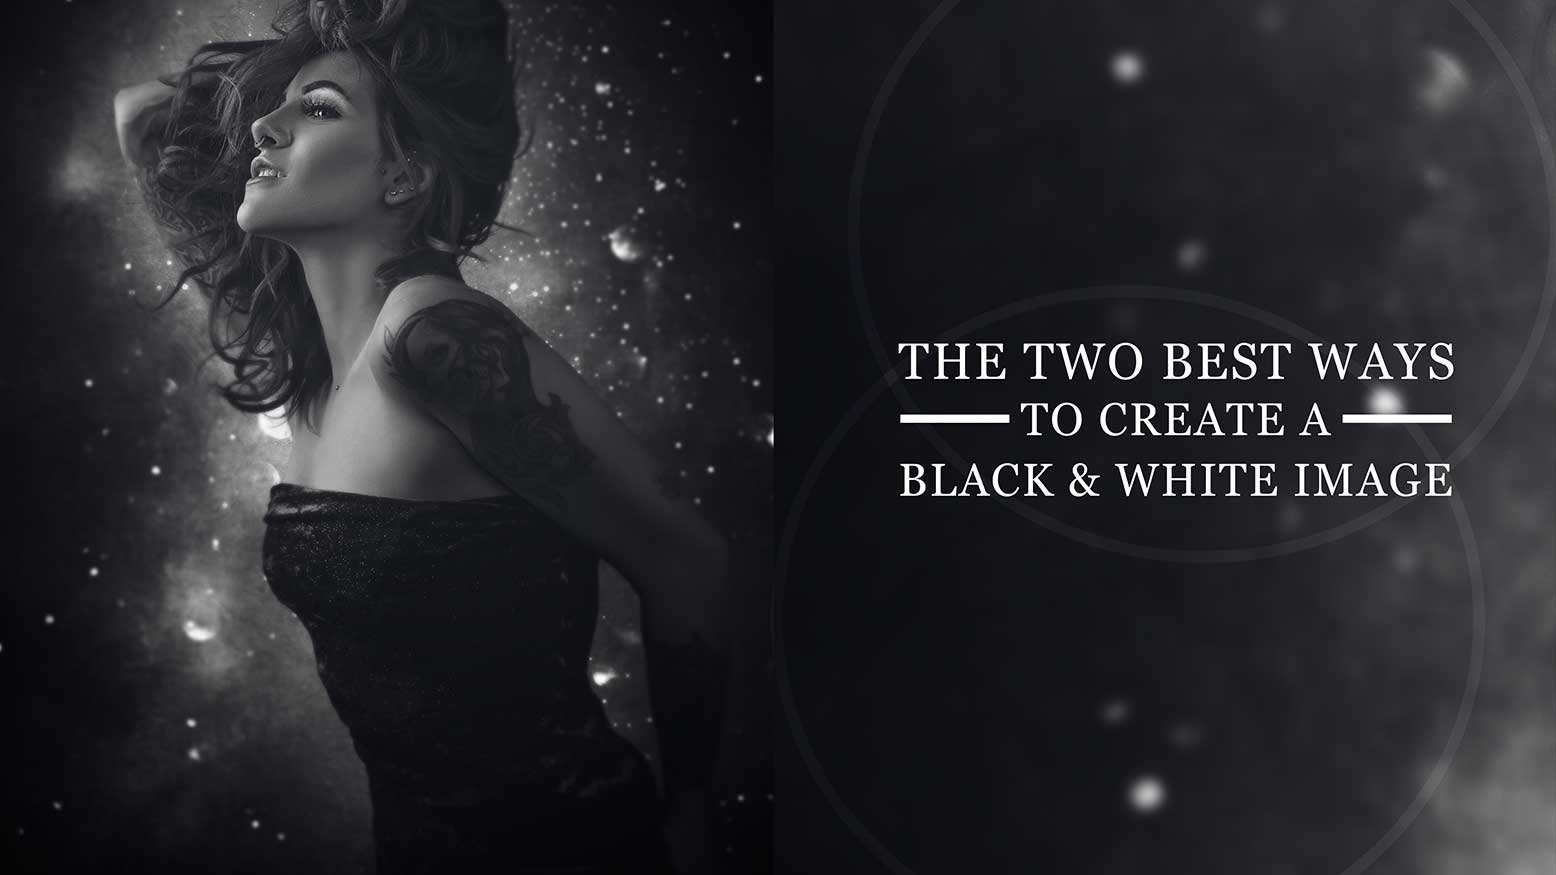 The Two Best Ways to Create a Black & White Image